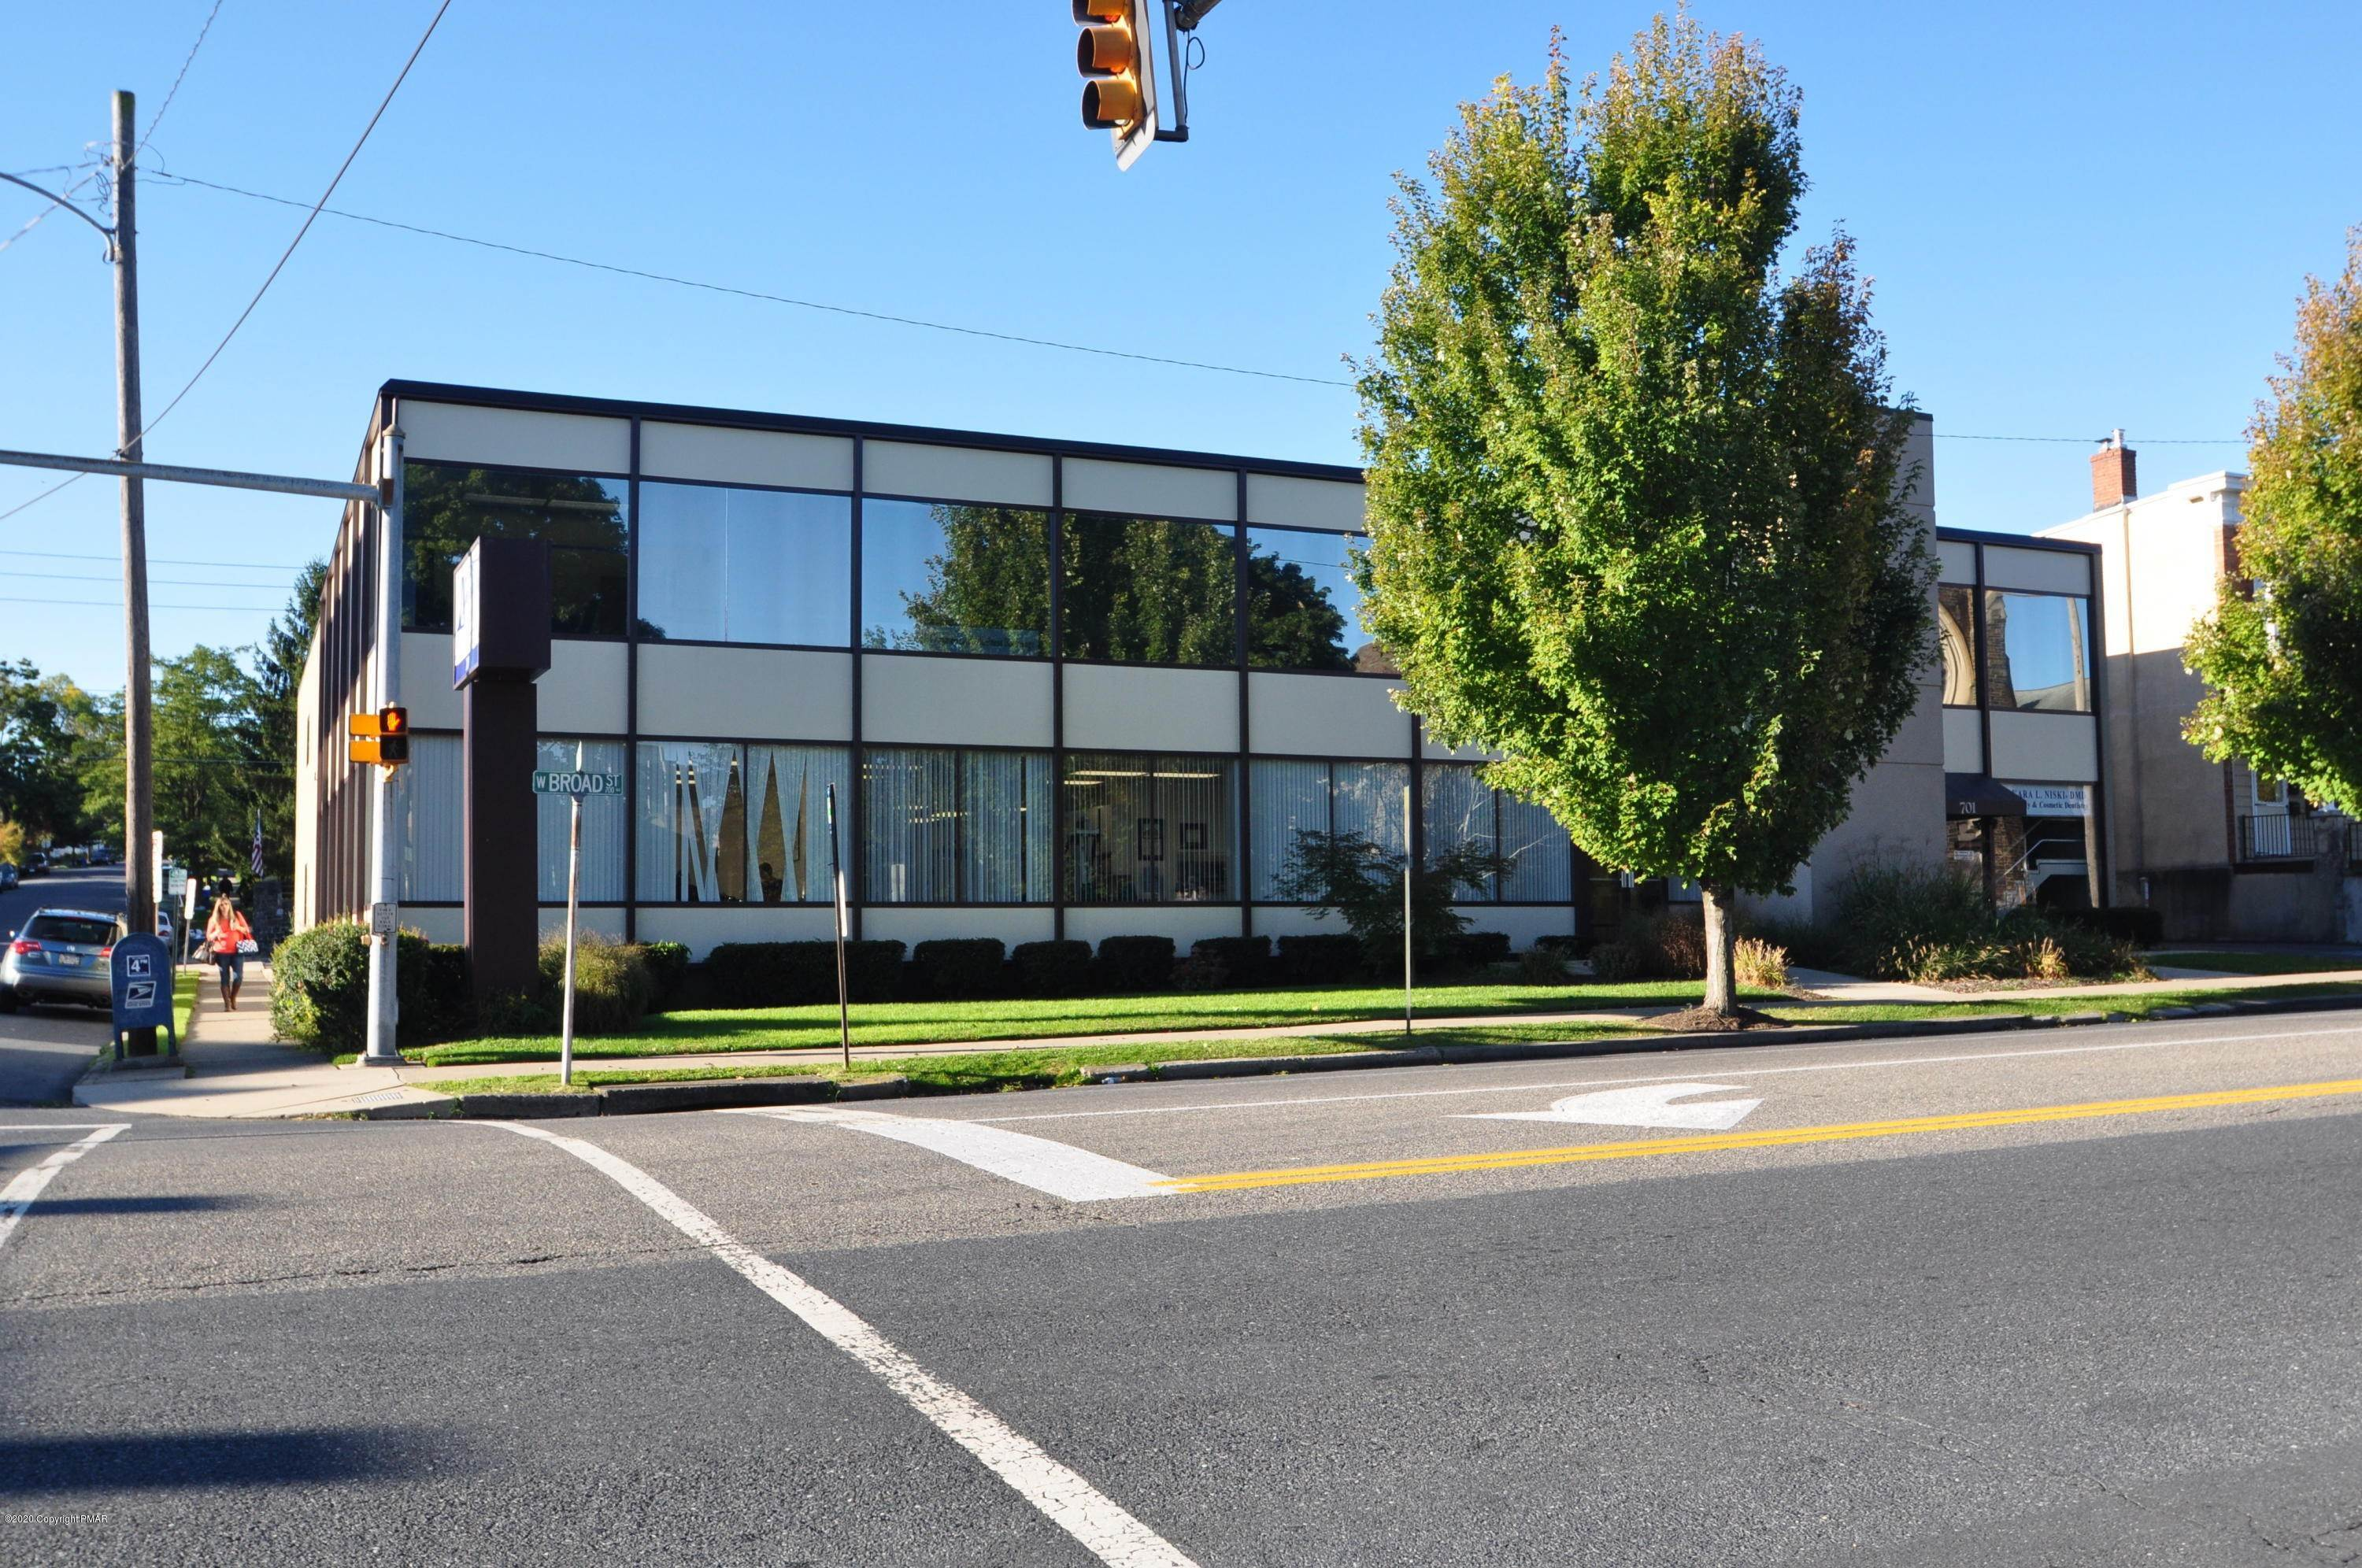 Commercial for Sale at 701 W Broad St Suite 201 Bethlehem, Pennsylvania 18018 United States